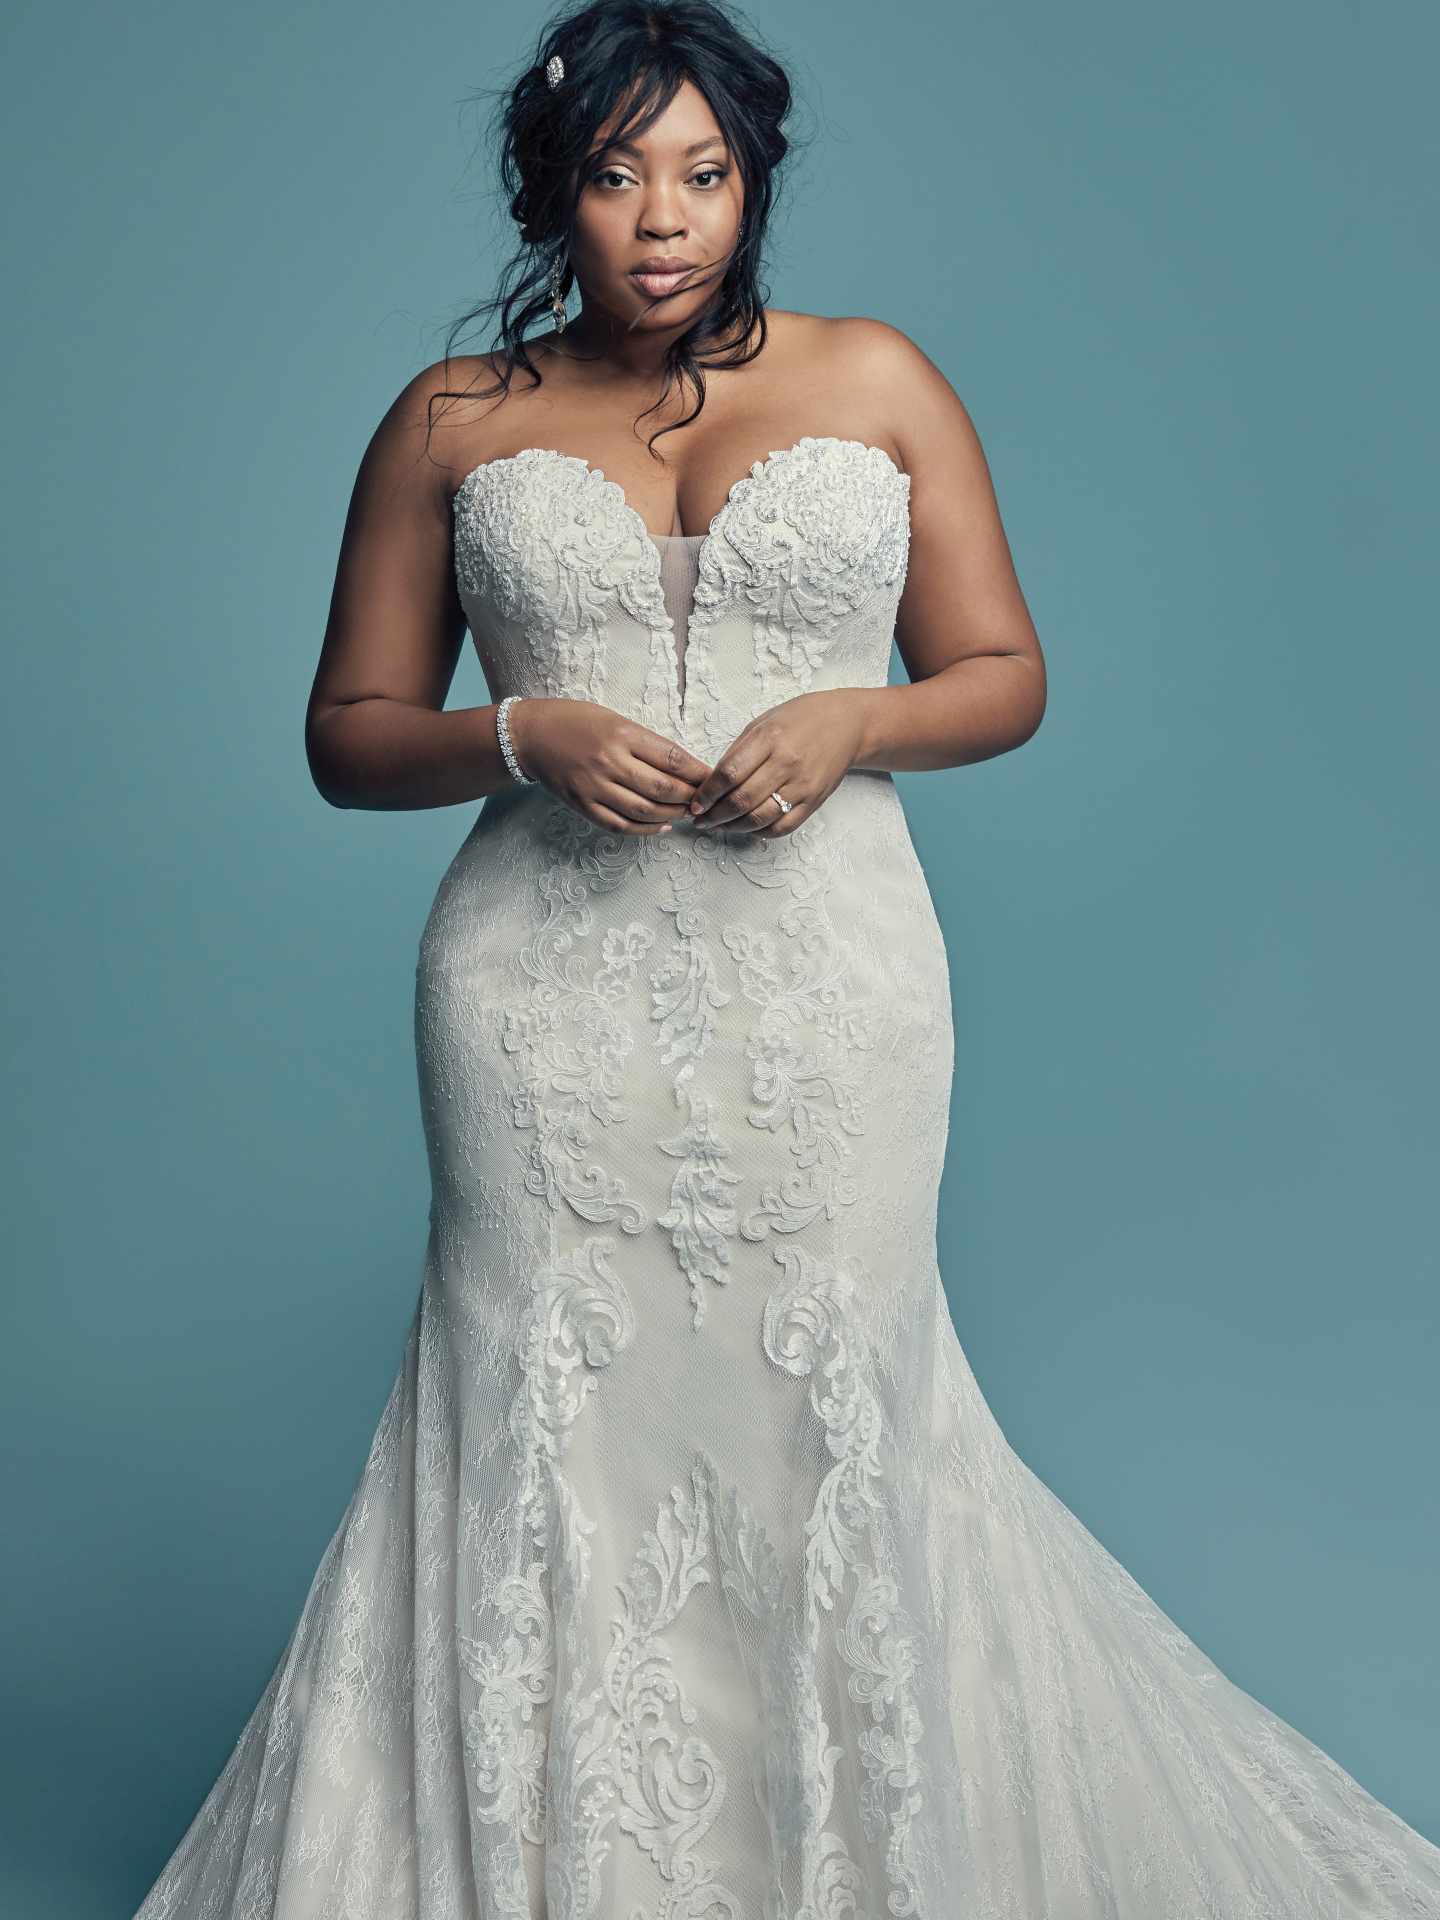 Wedding Dress for Busty